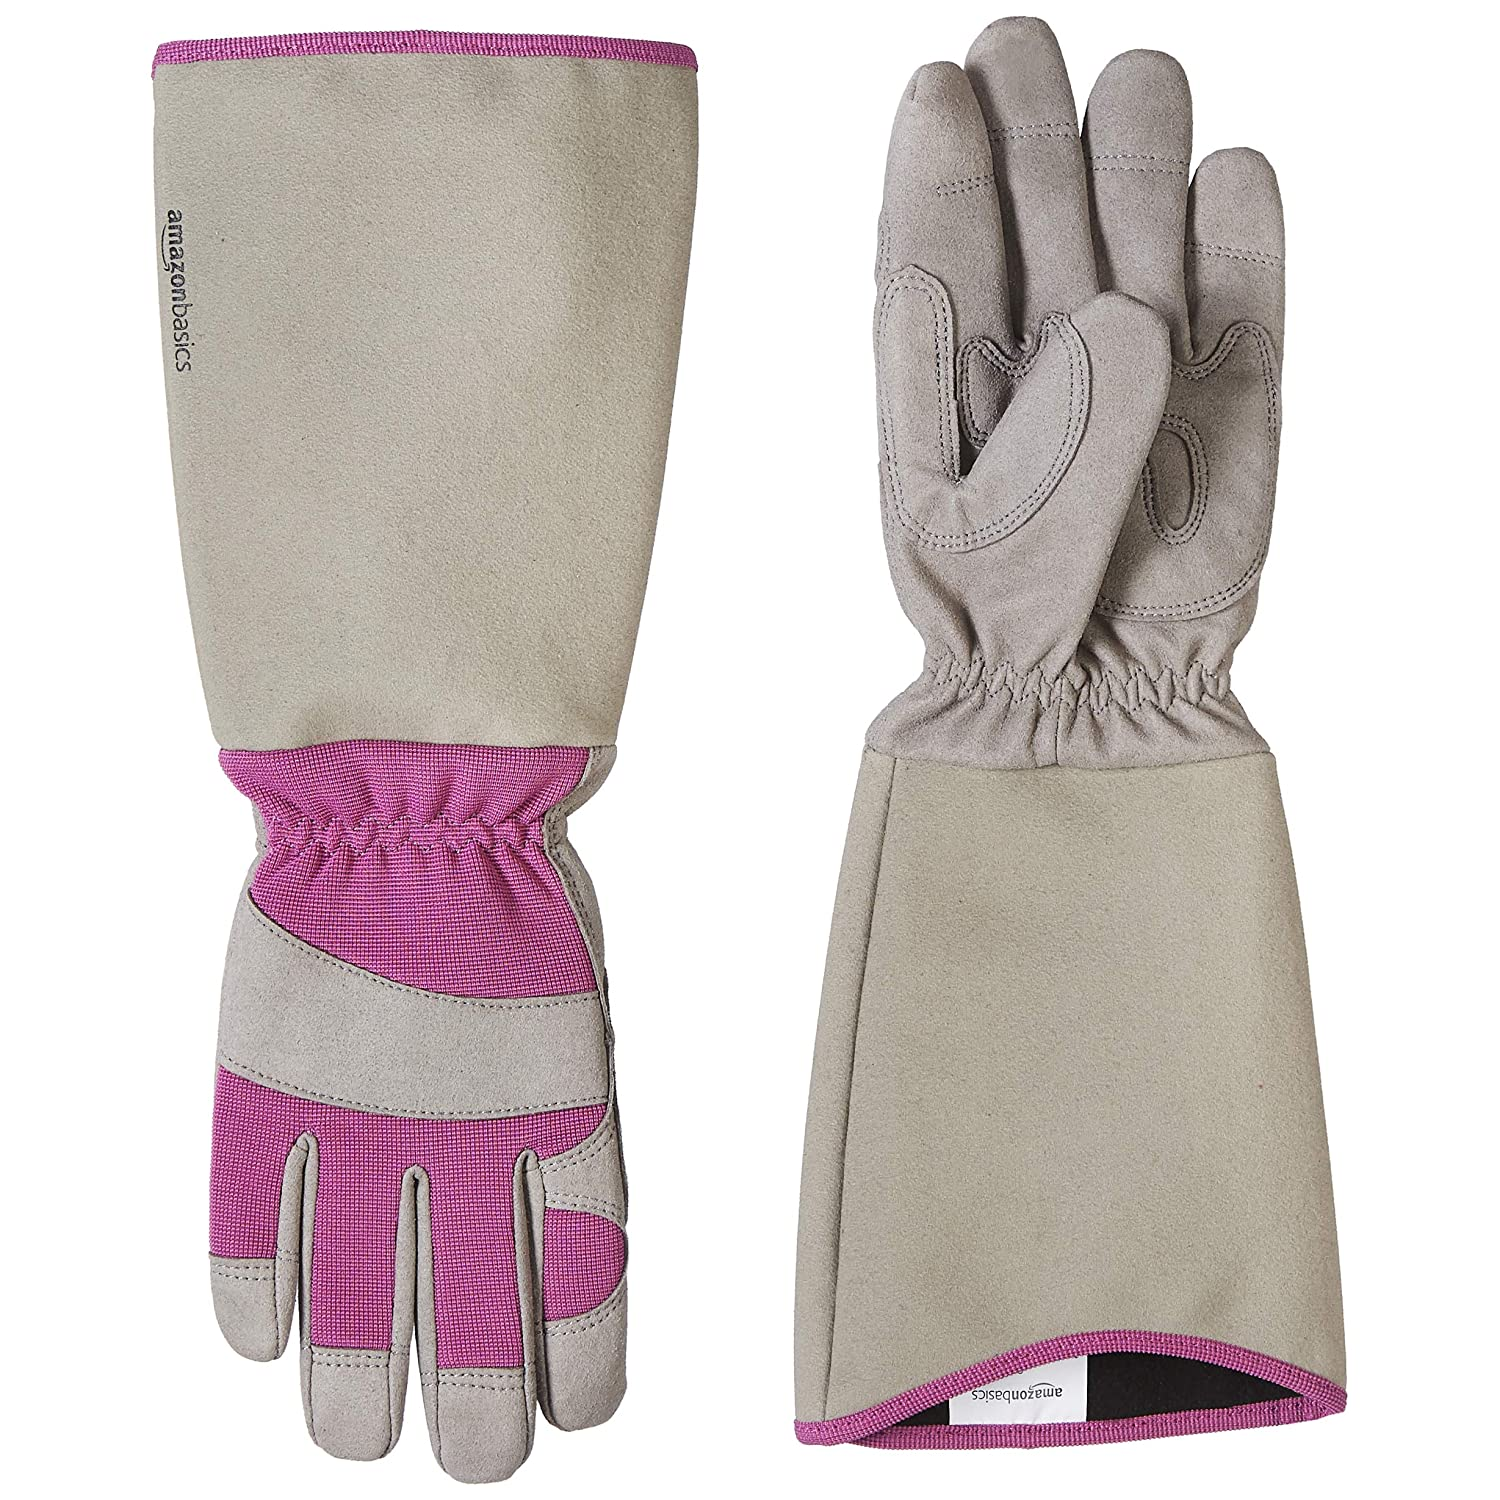 AmazonBasics Rose Pruning Thorn Proof Gardening Gloves with Forearm Protection - Purple, XS